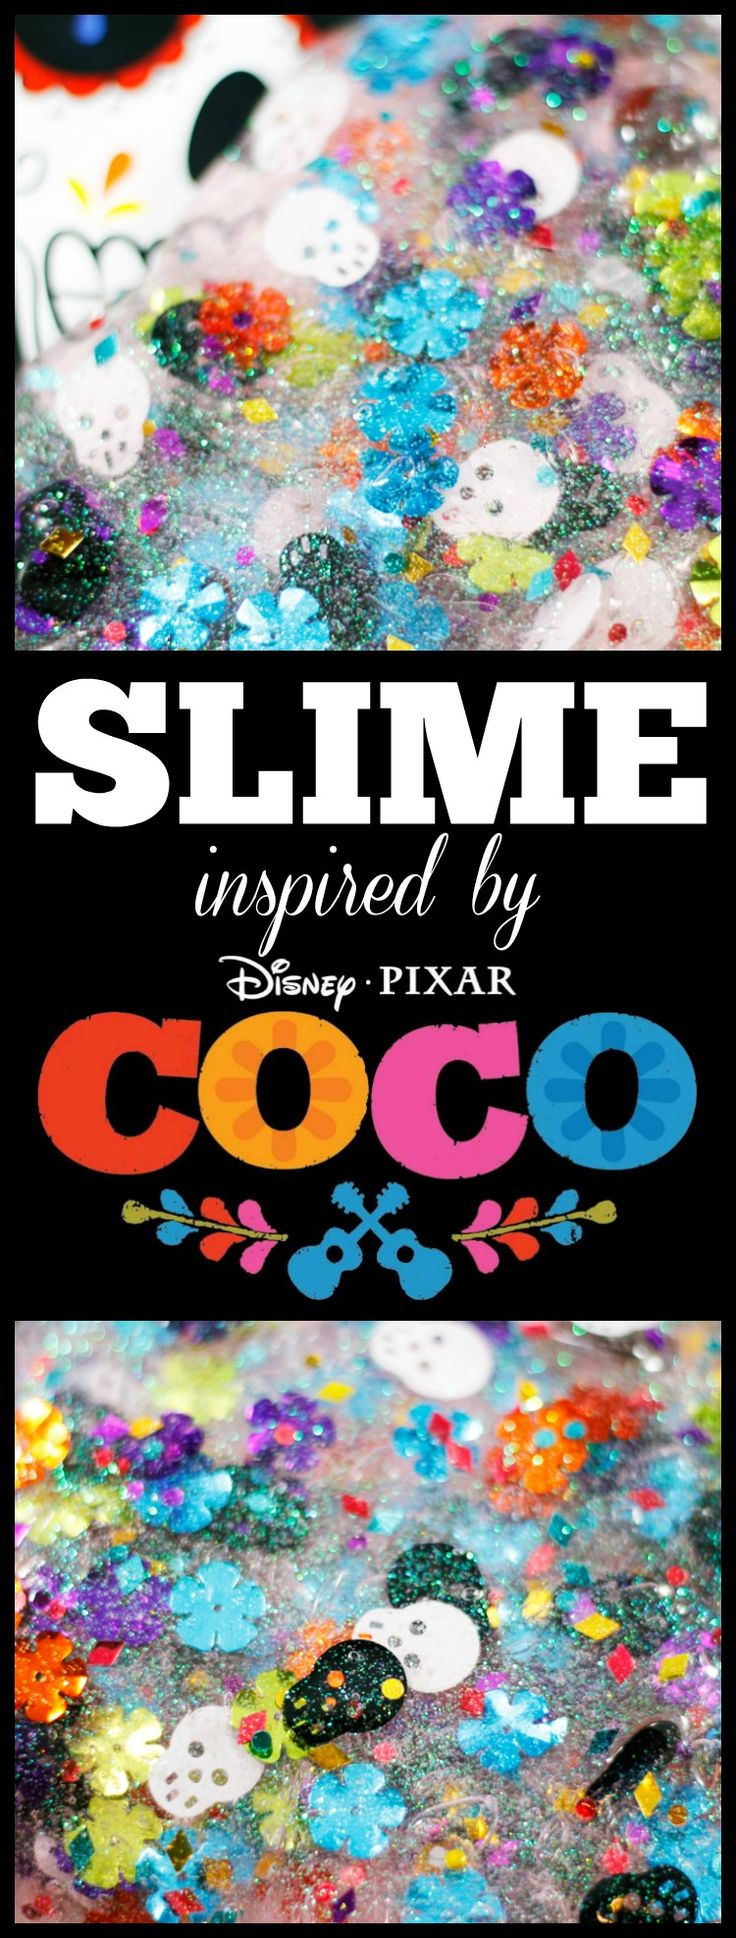 Celebrate Disney Pixar's Coco with this fun slime recipe! It's easy to make and a fun way to prepare for this upcoming film. Learn about Dia de Muertos and how you can see it in a fun, whimsical story in the movie Coco.